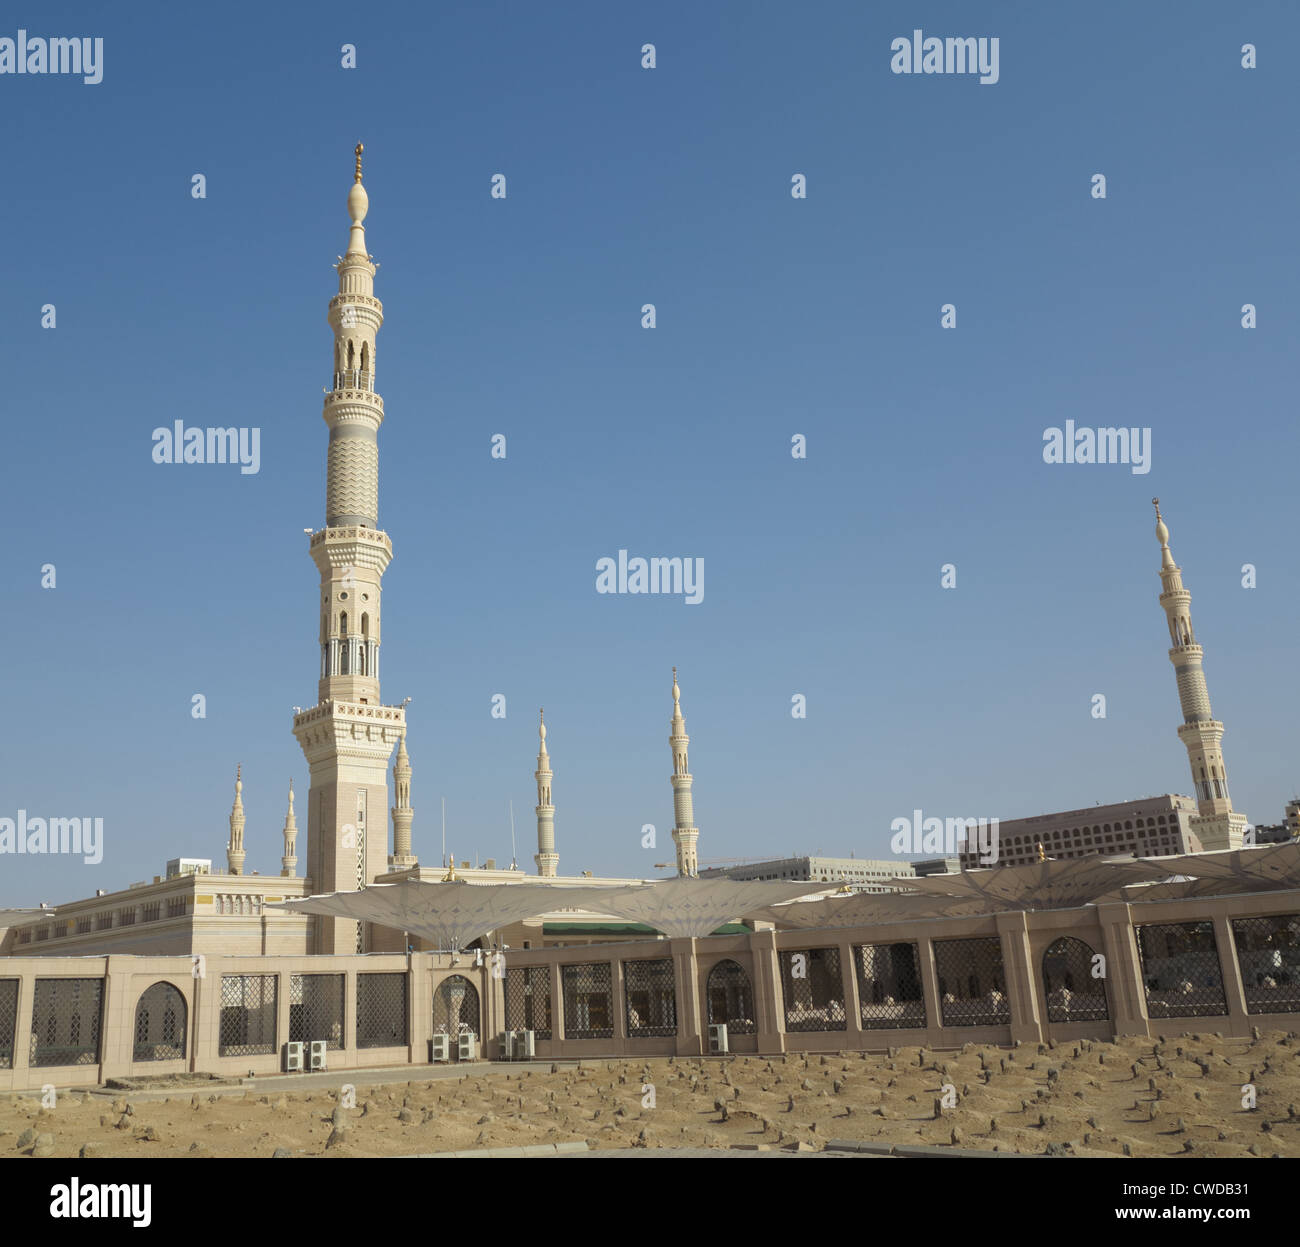 View of An Nabawi Mosque from Baqi' cemetery, Al Madinah, Saudi Arabia - Stock Image